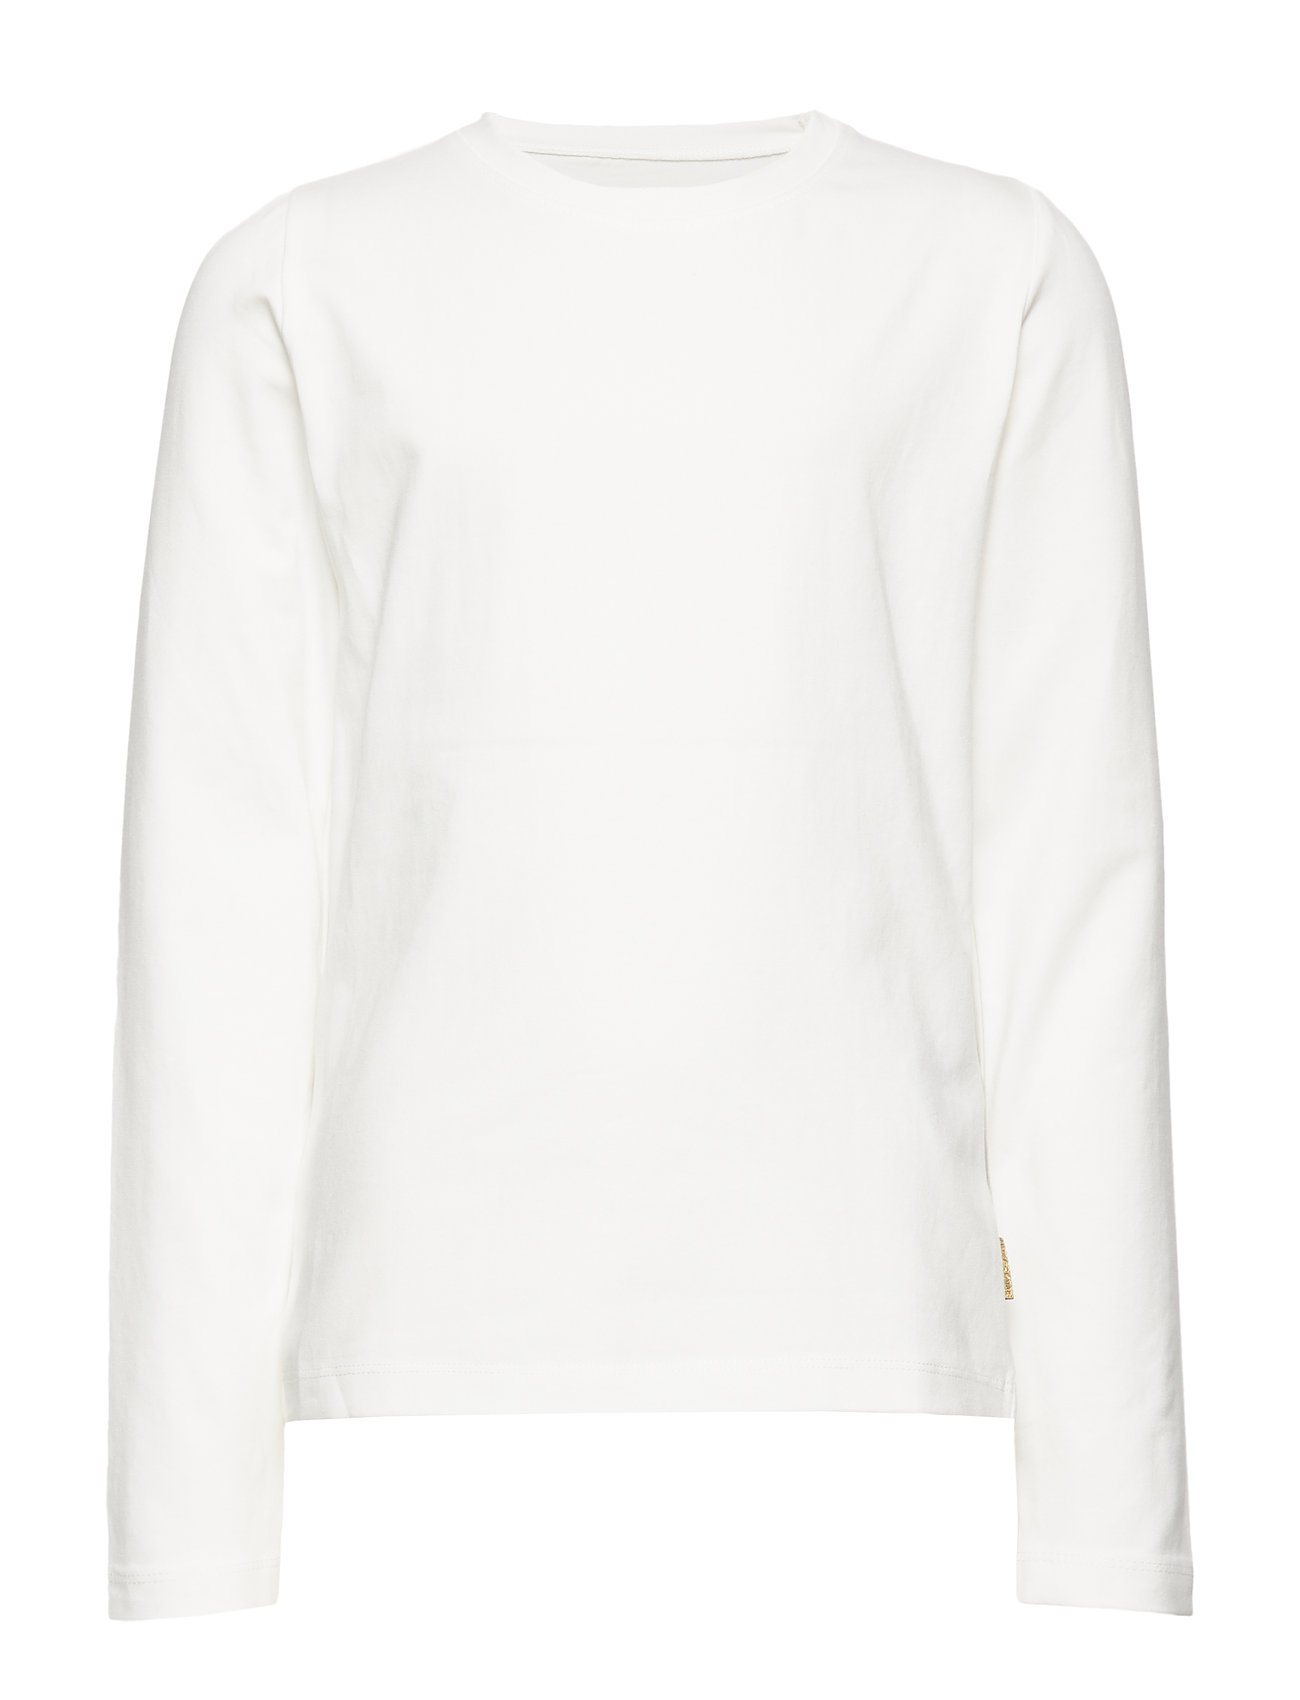 Hust & Claire T-shirt - IVORY